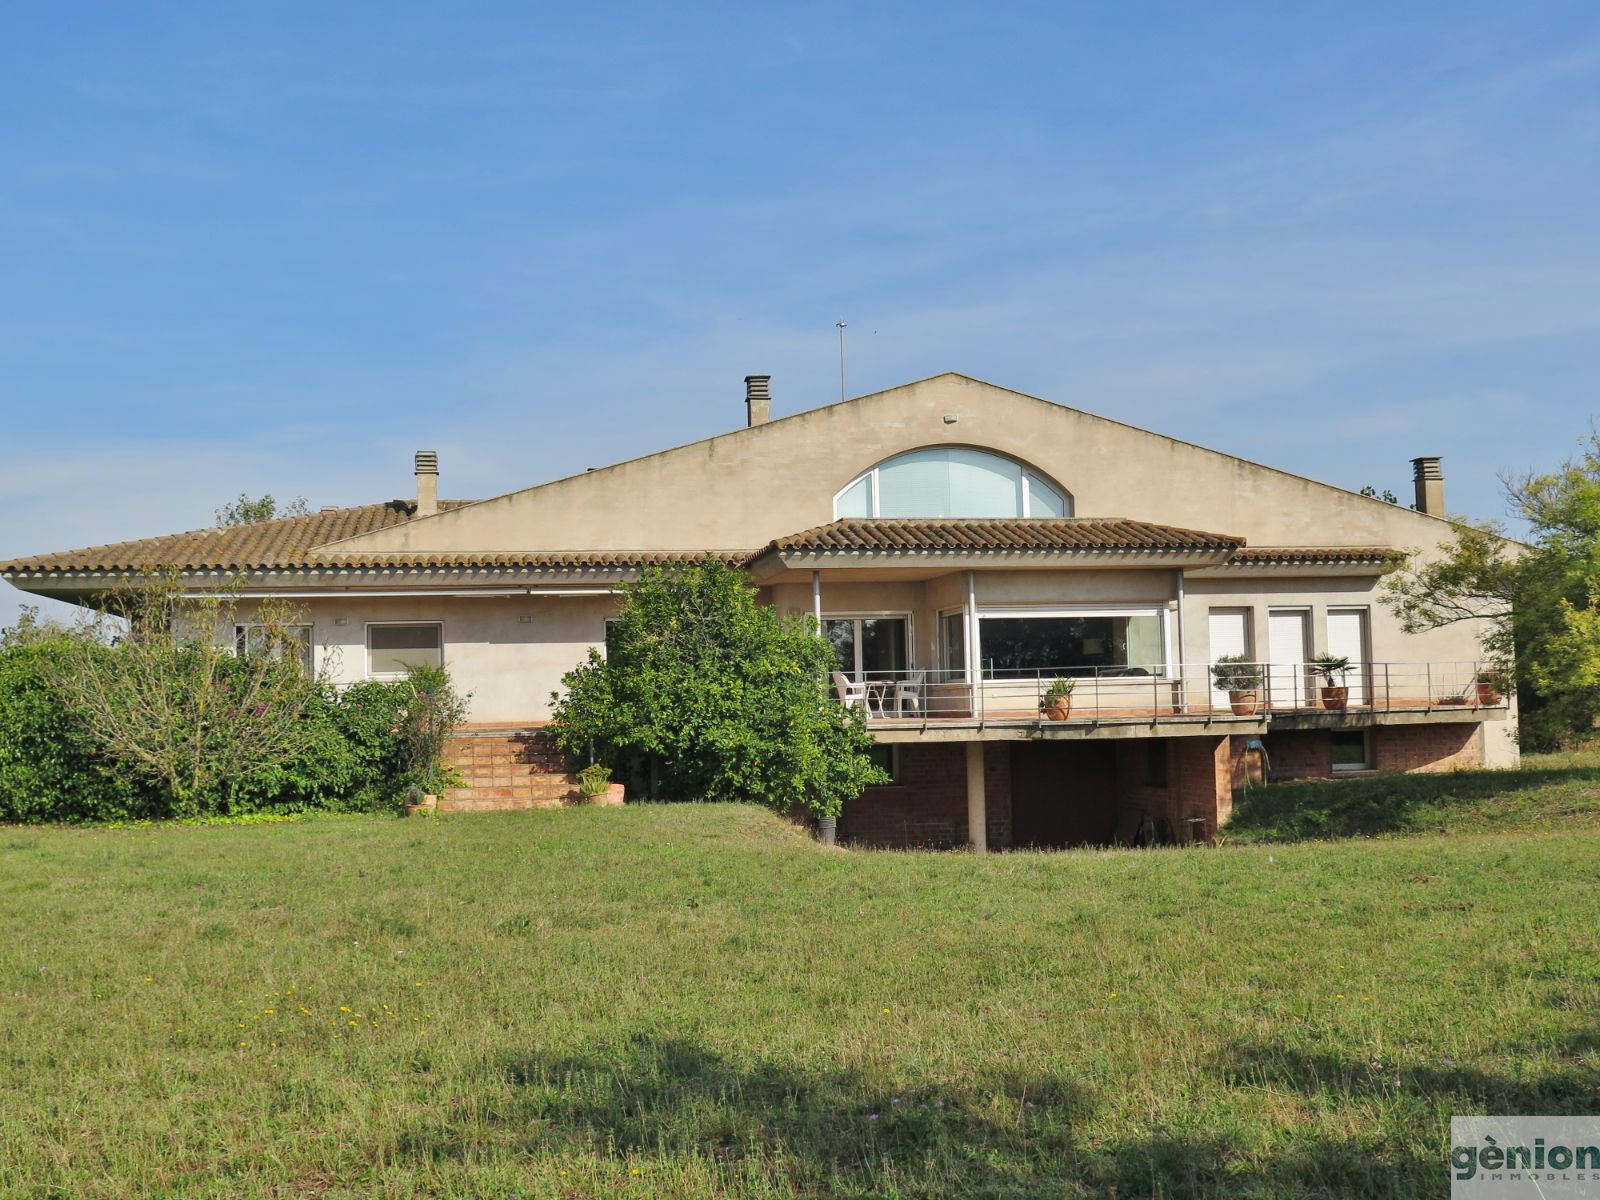 PROPERTY IN VERGES (BAIX EMPORDÀ). 803 m² HOUSE ON A 15,117 m² PLOT